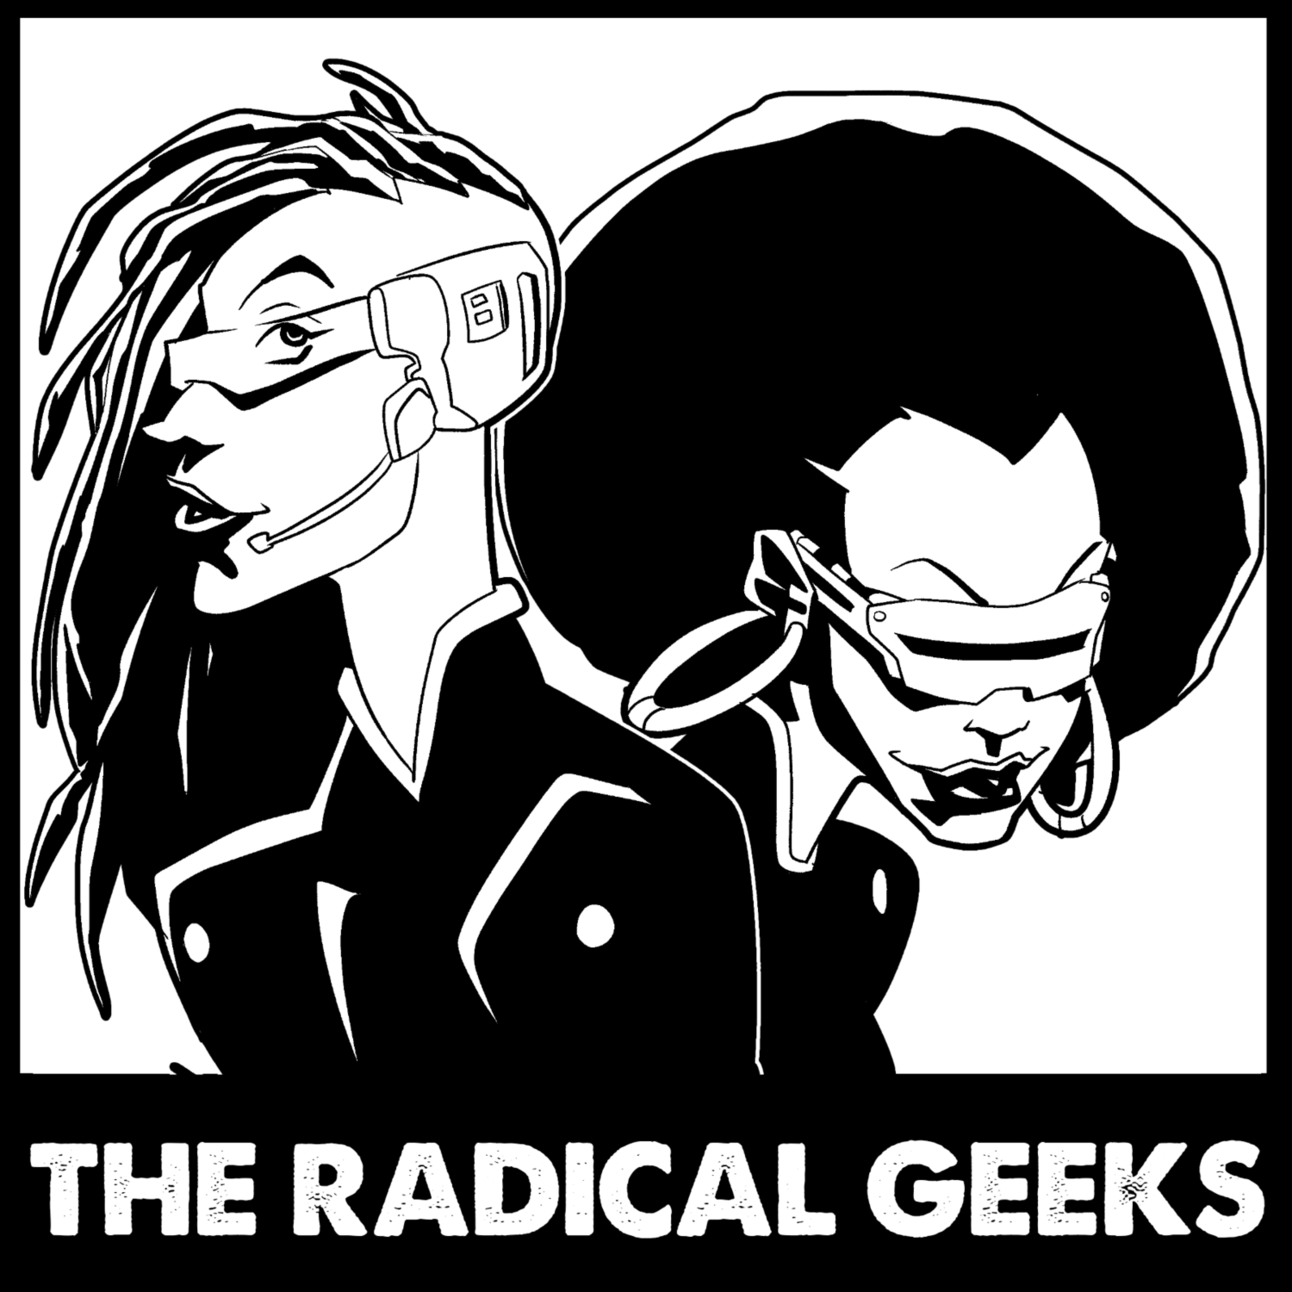 The Radical Geeks podcast